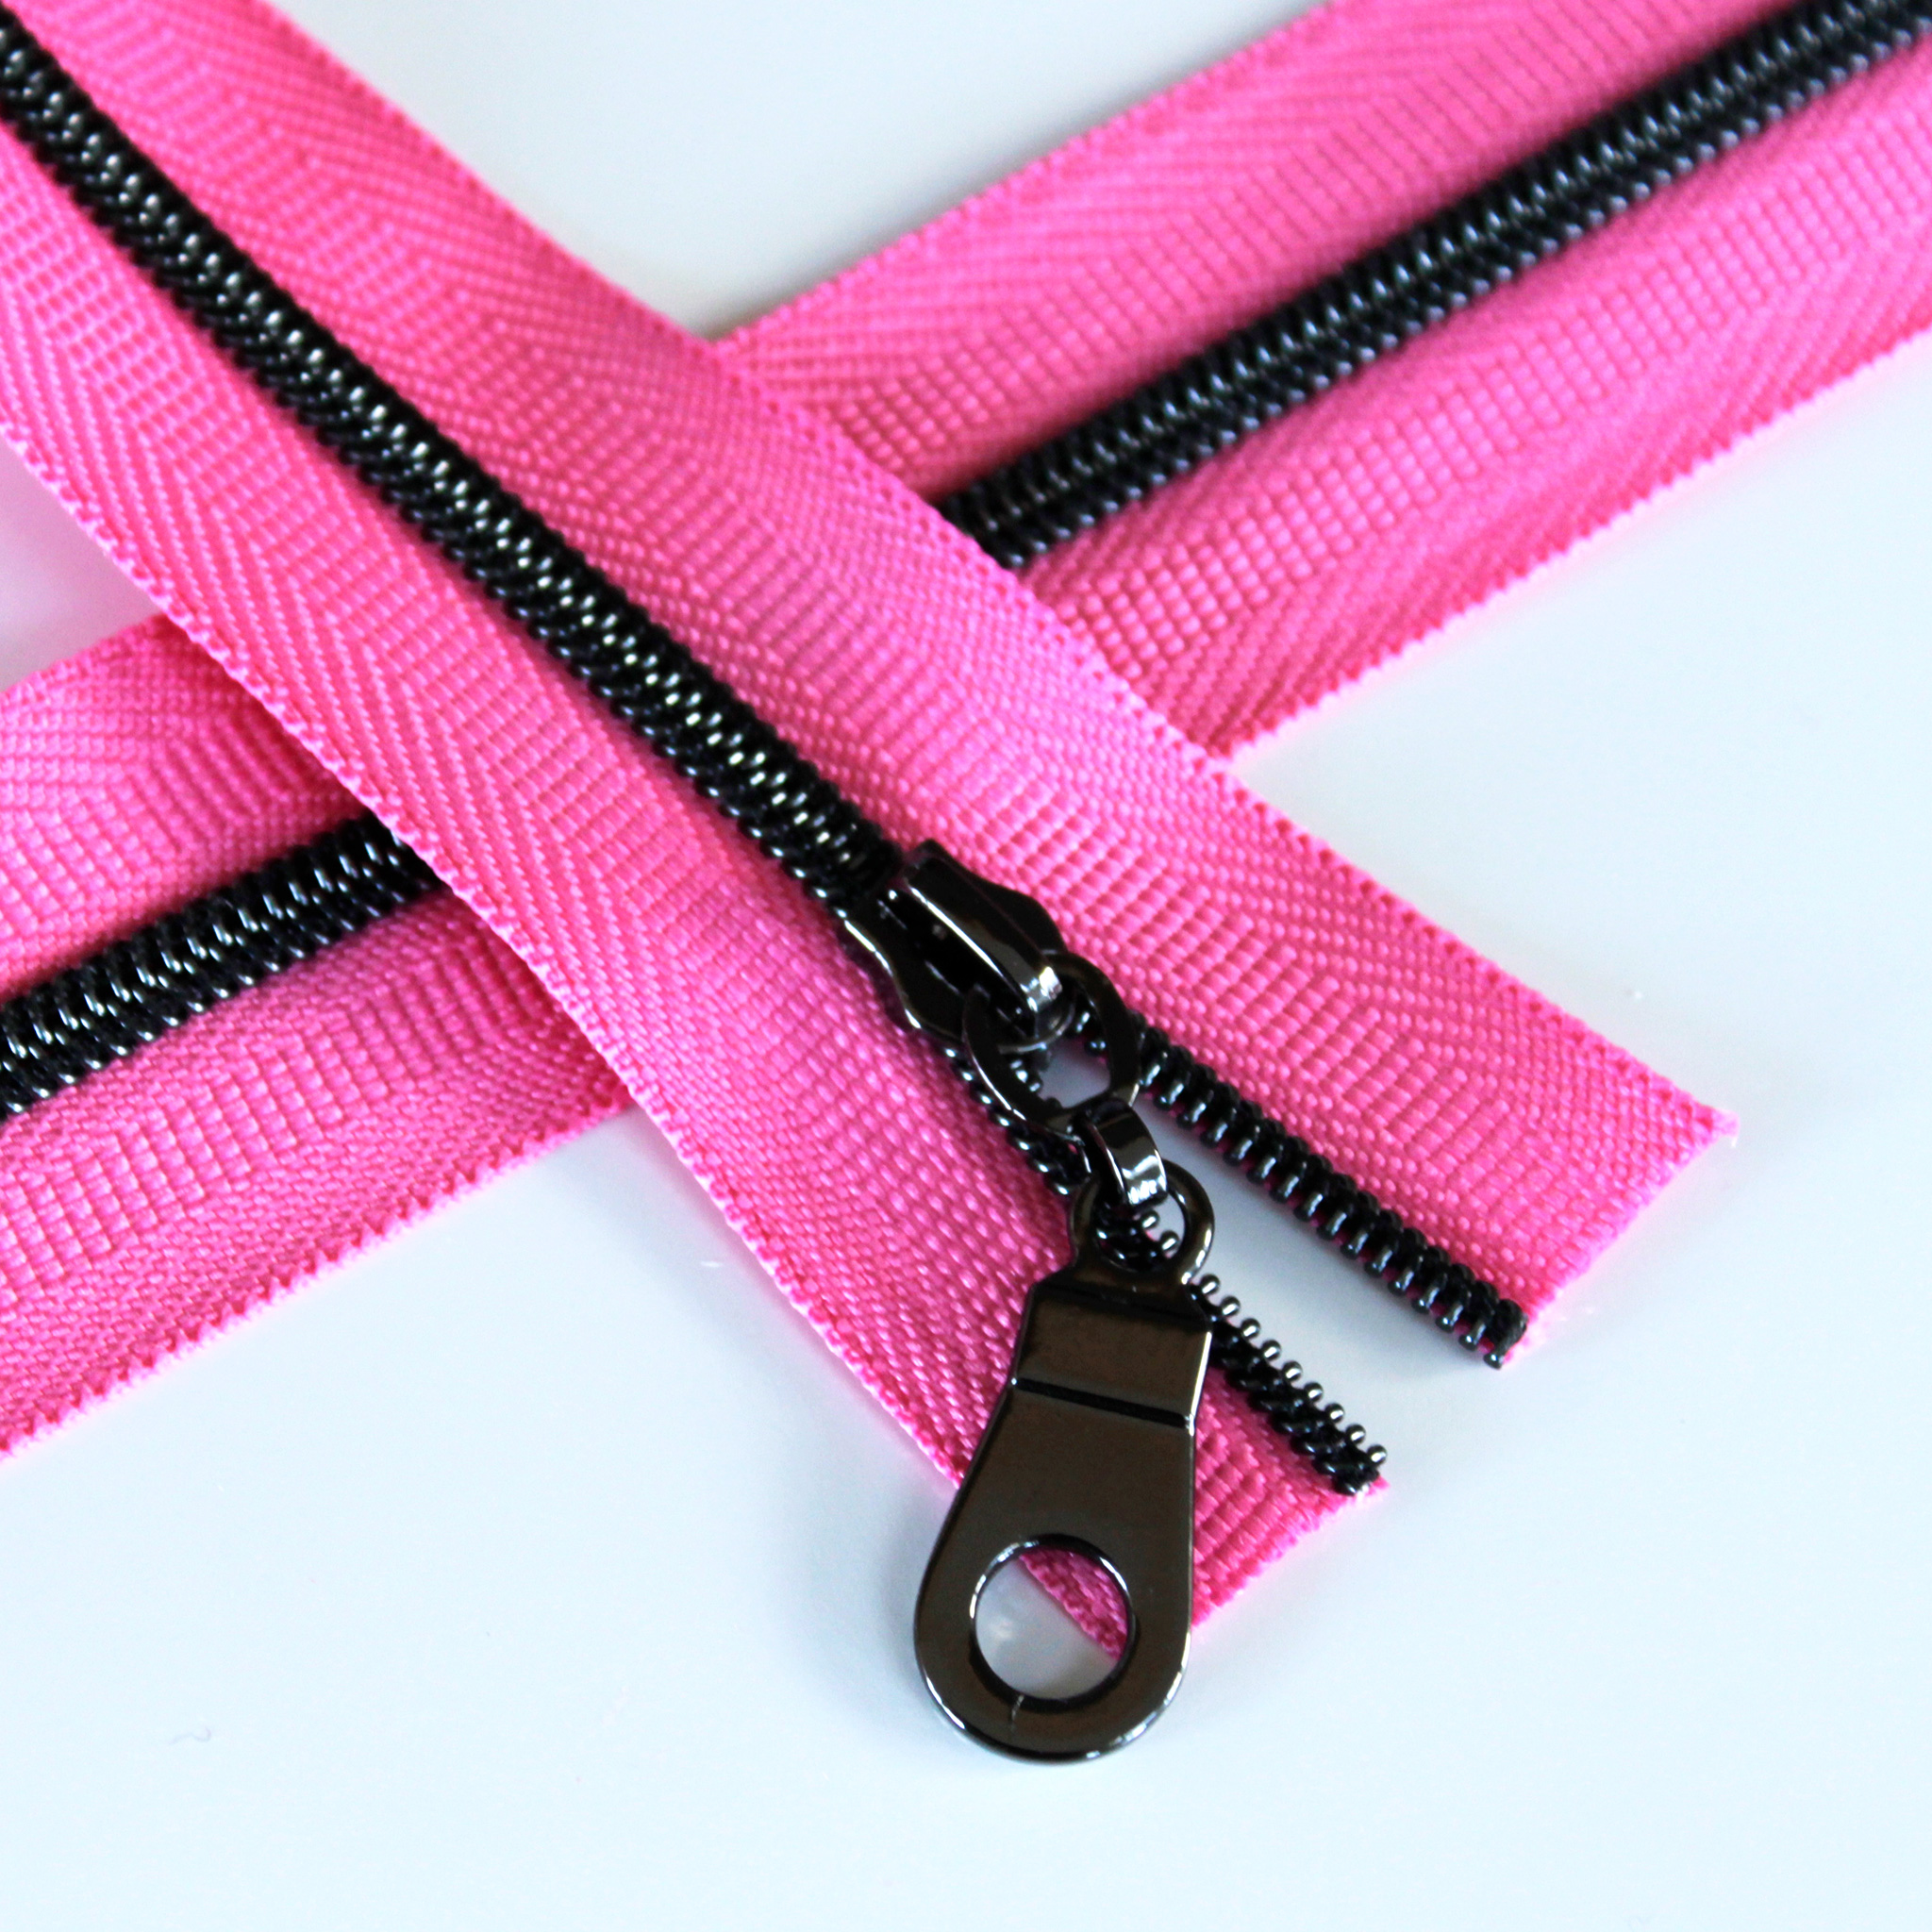 3-Nylon-Coil-Zipper-princess-pink-with-gunmetal-teeth